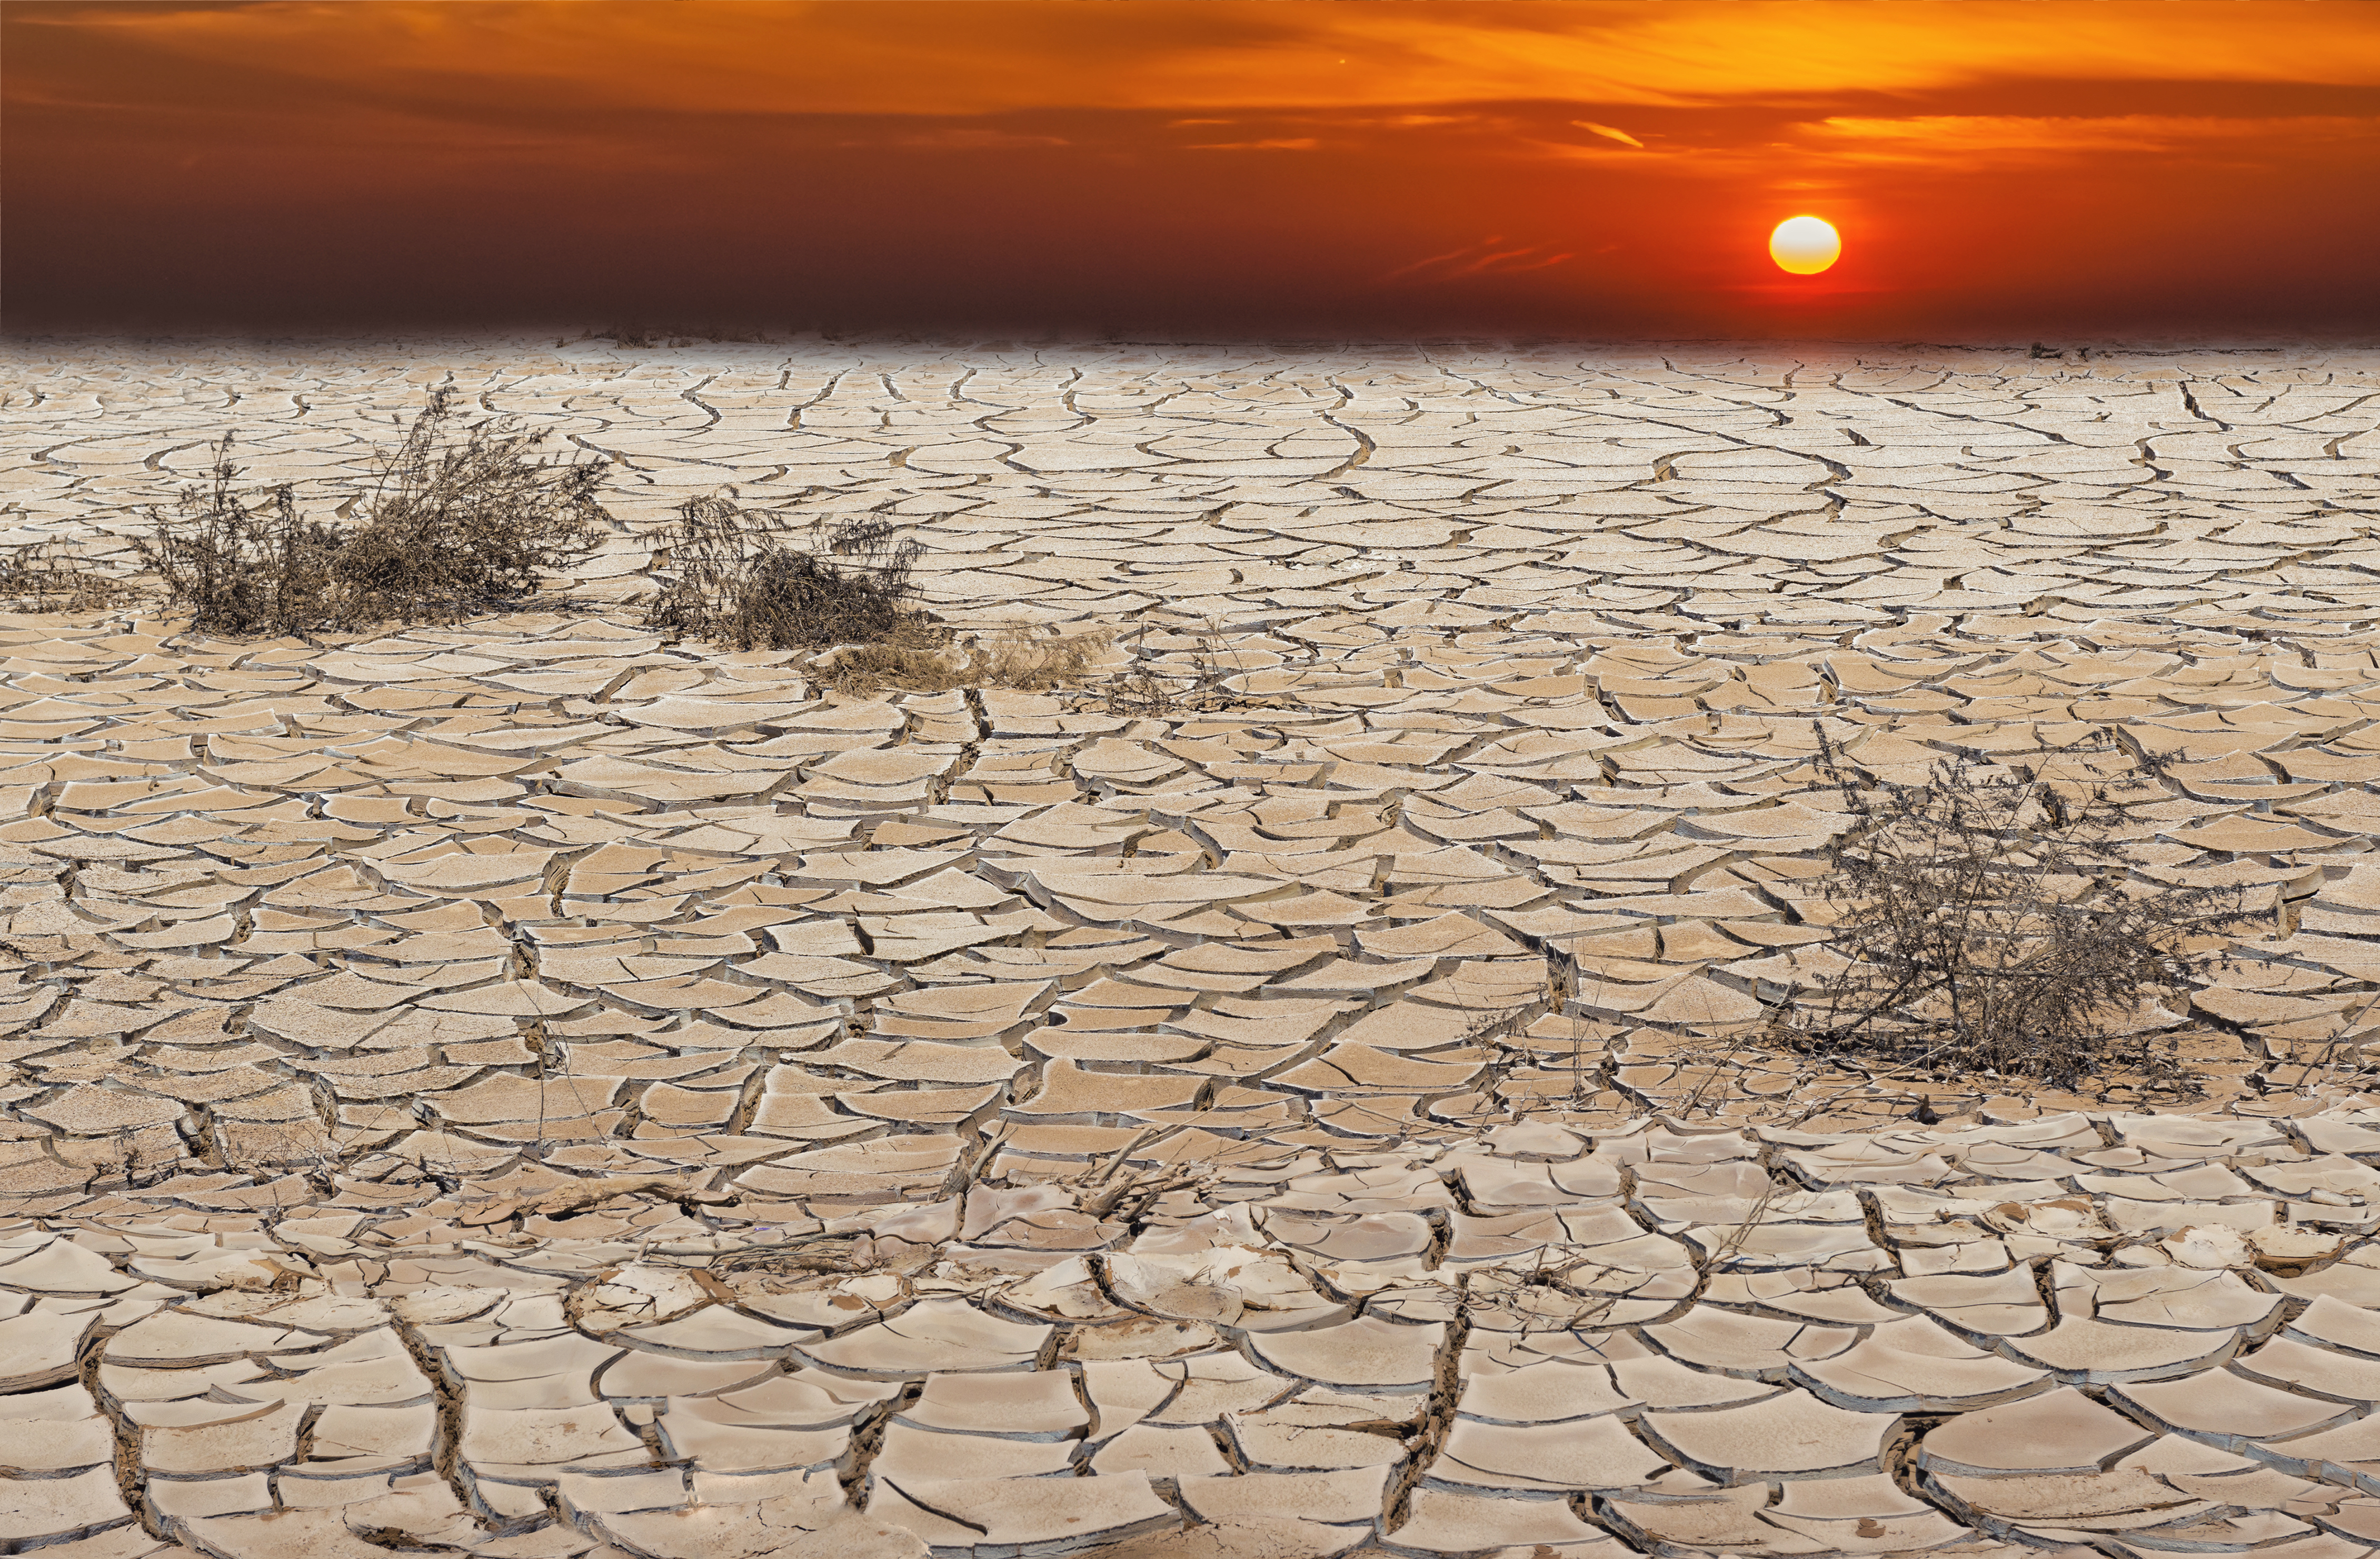 Red Heat or Horrors of Global warming